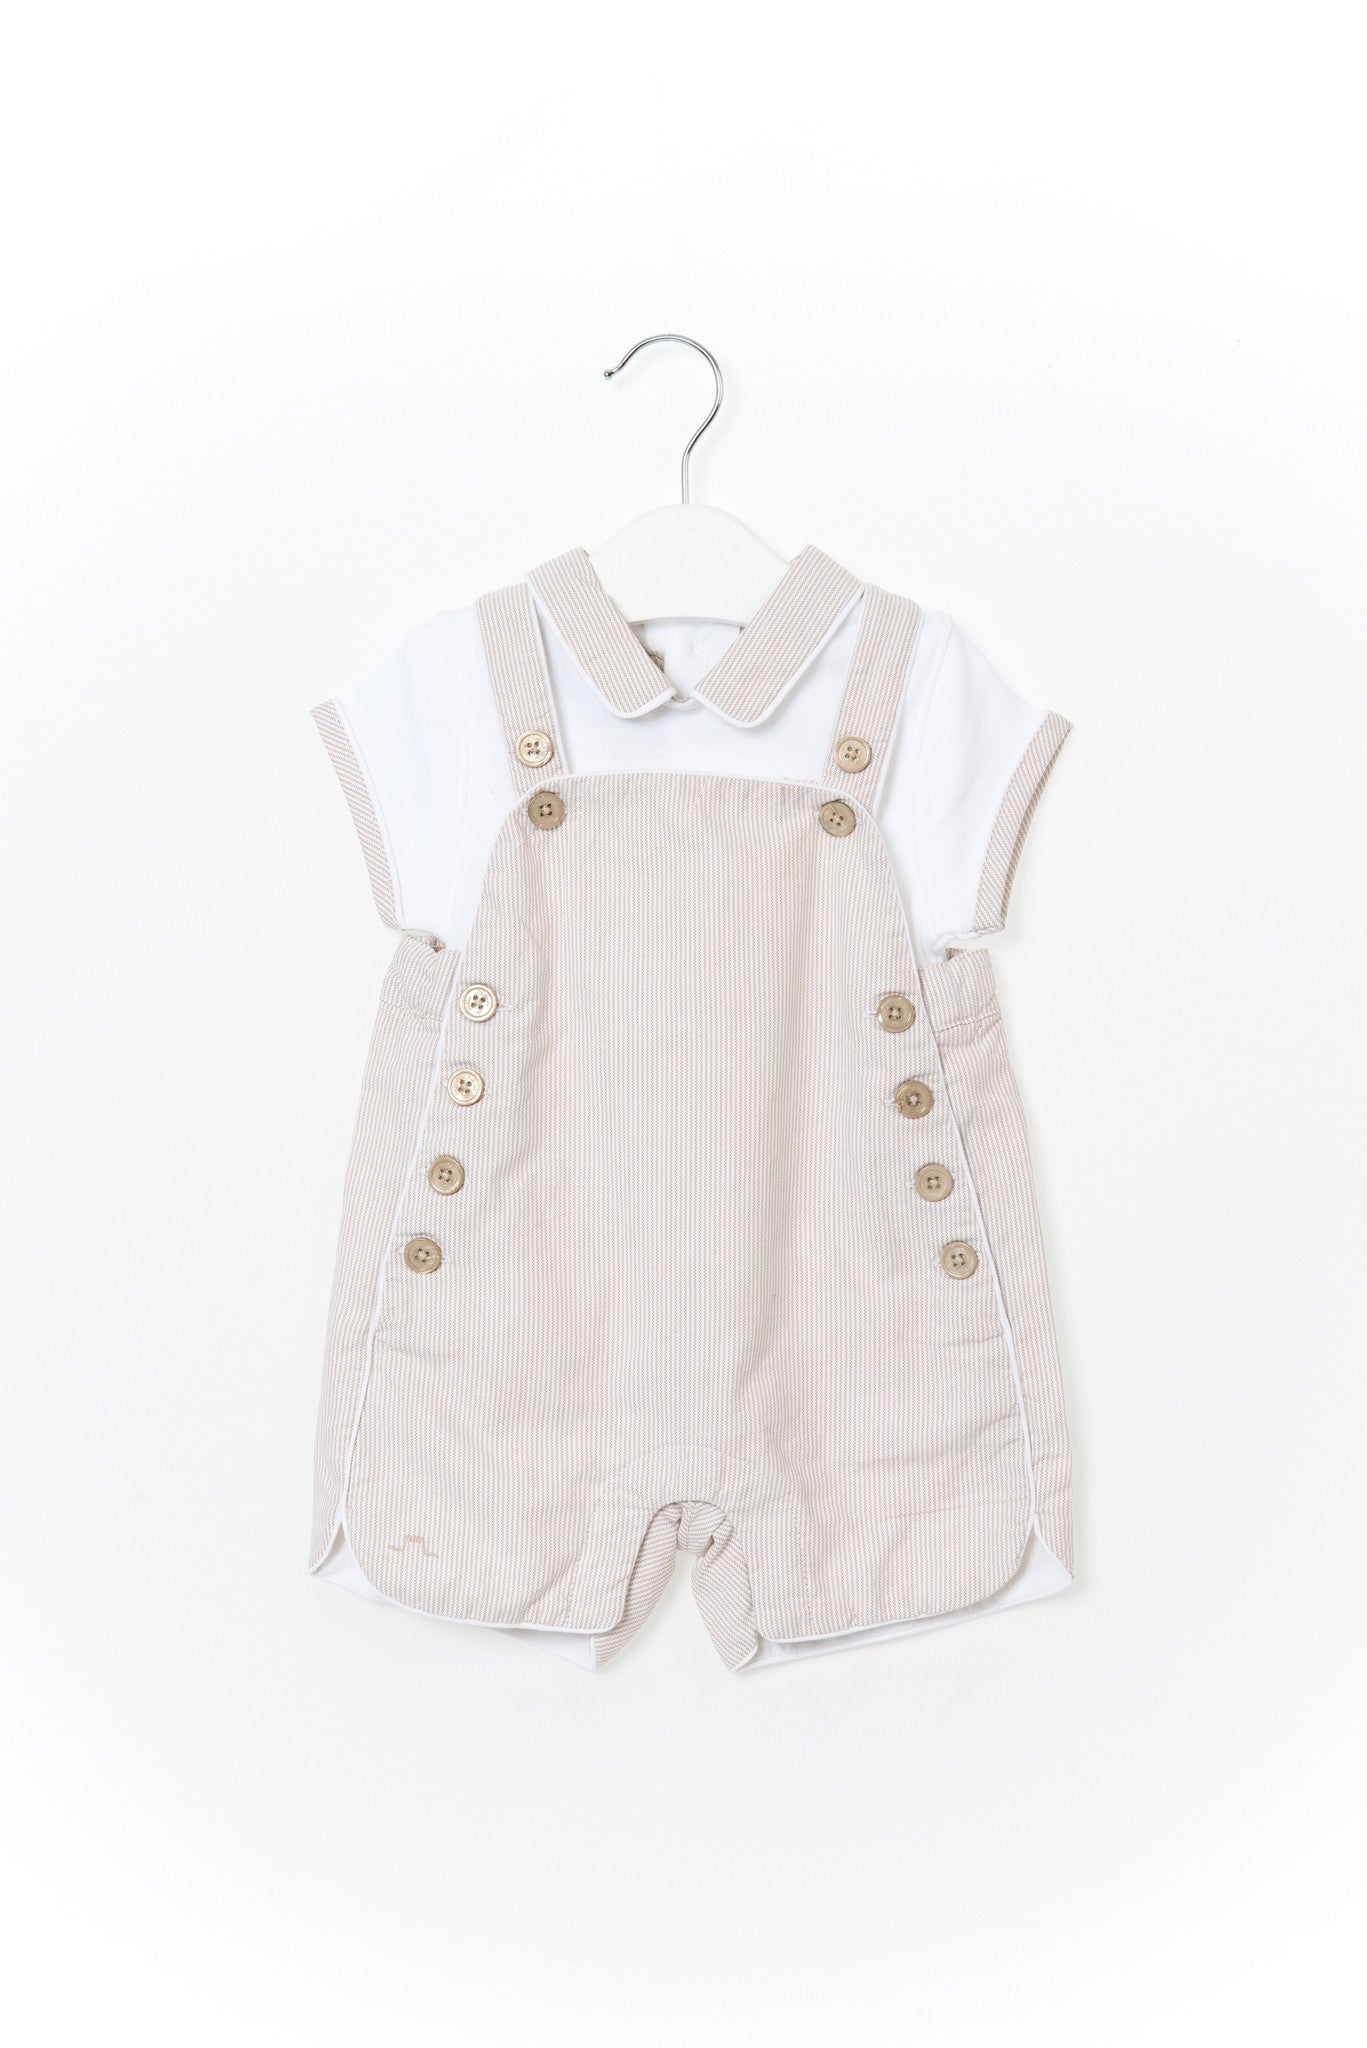 10001289 Chateau de Sable Baby~Overall Set 6M at Retykle